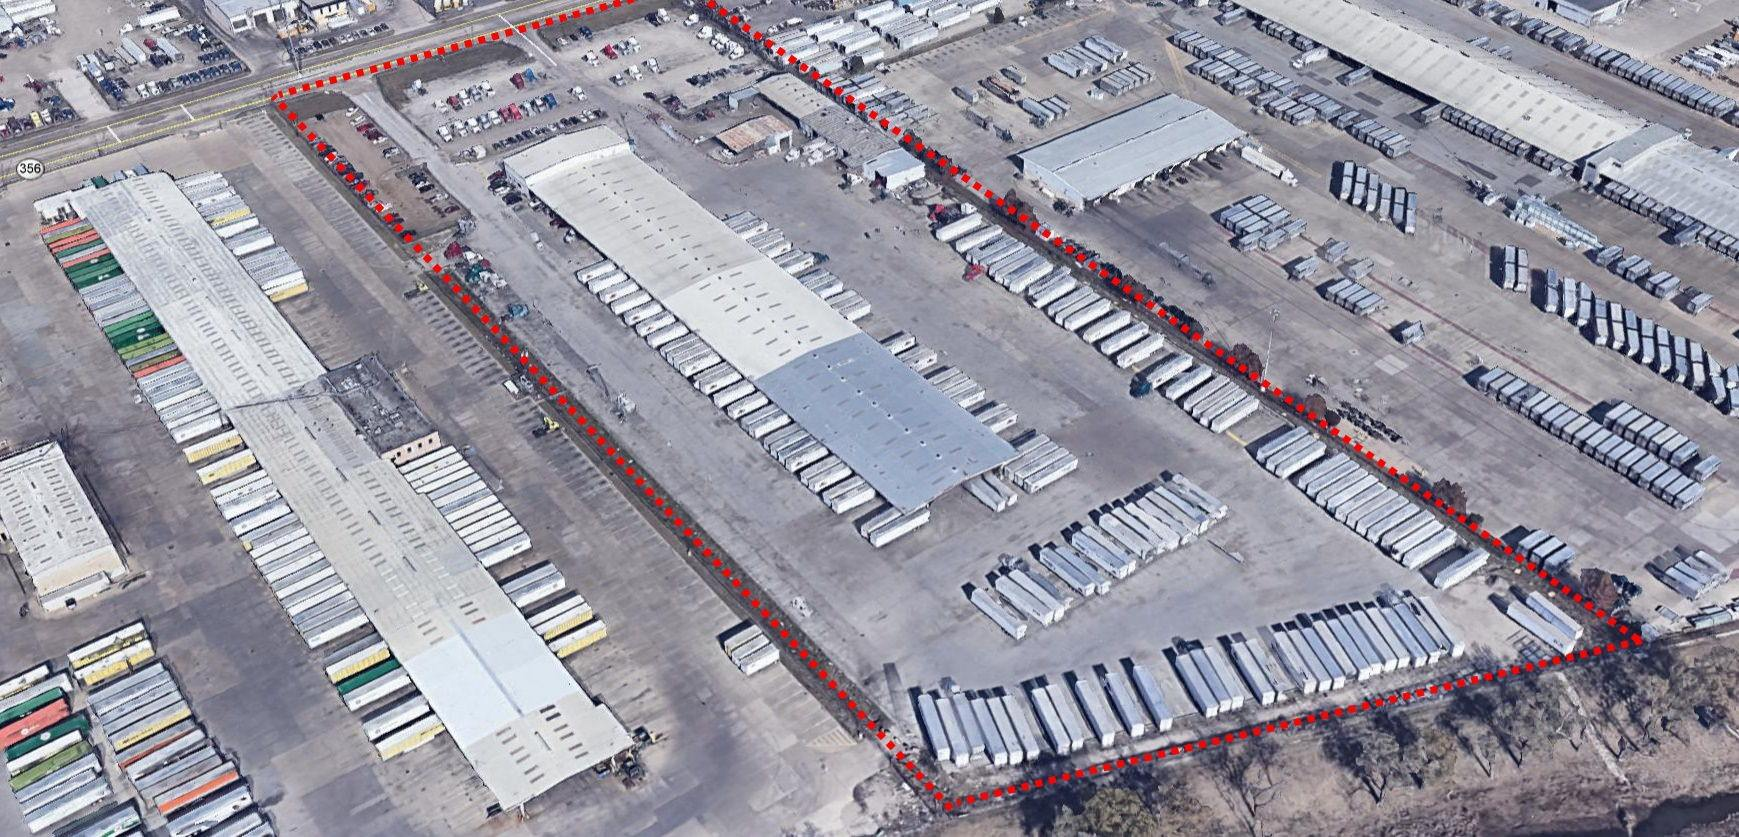 A warehouse that has a lot of semi trucks parked in the parking lot around it and containers behind